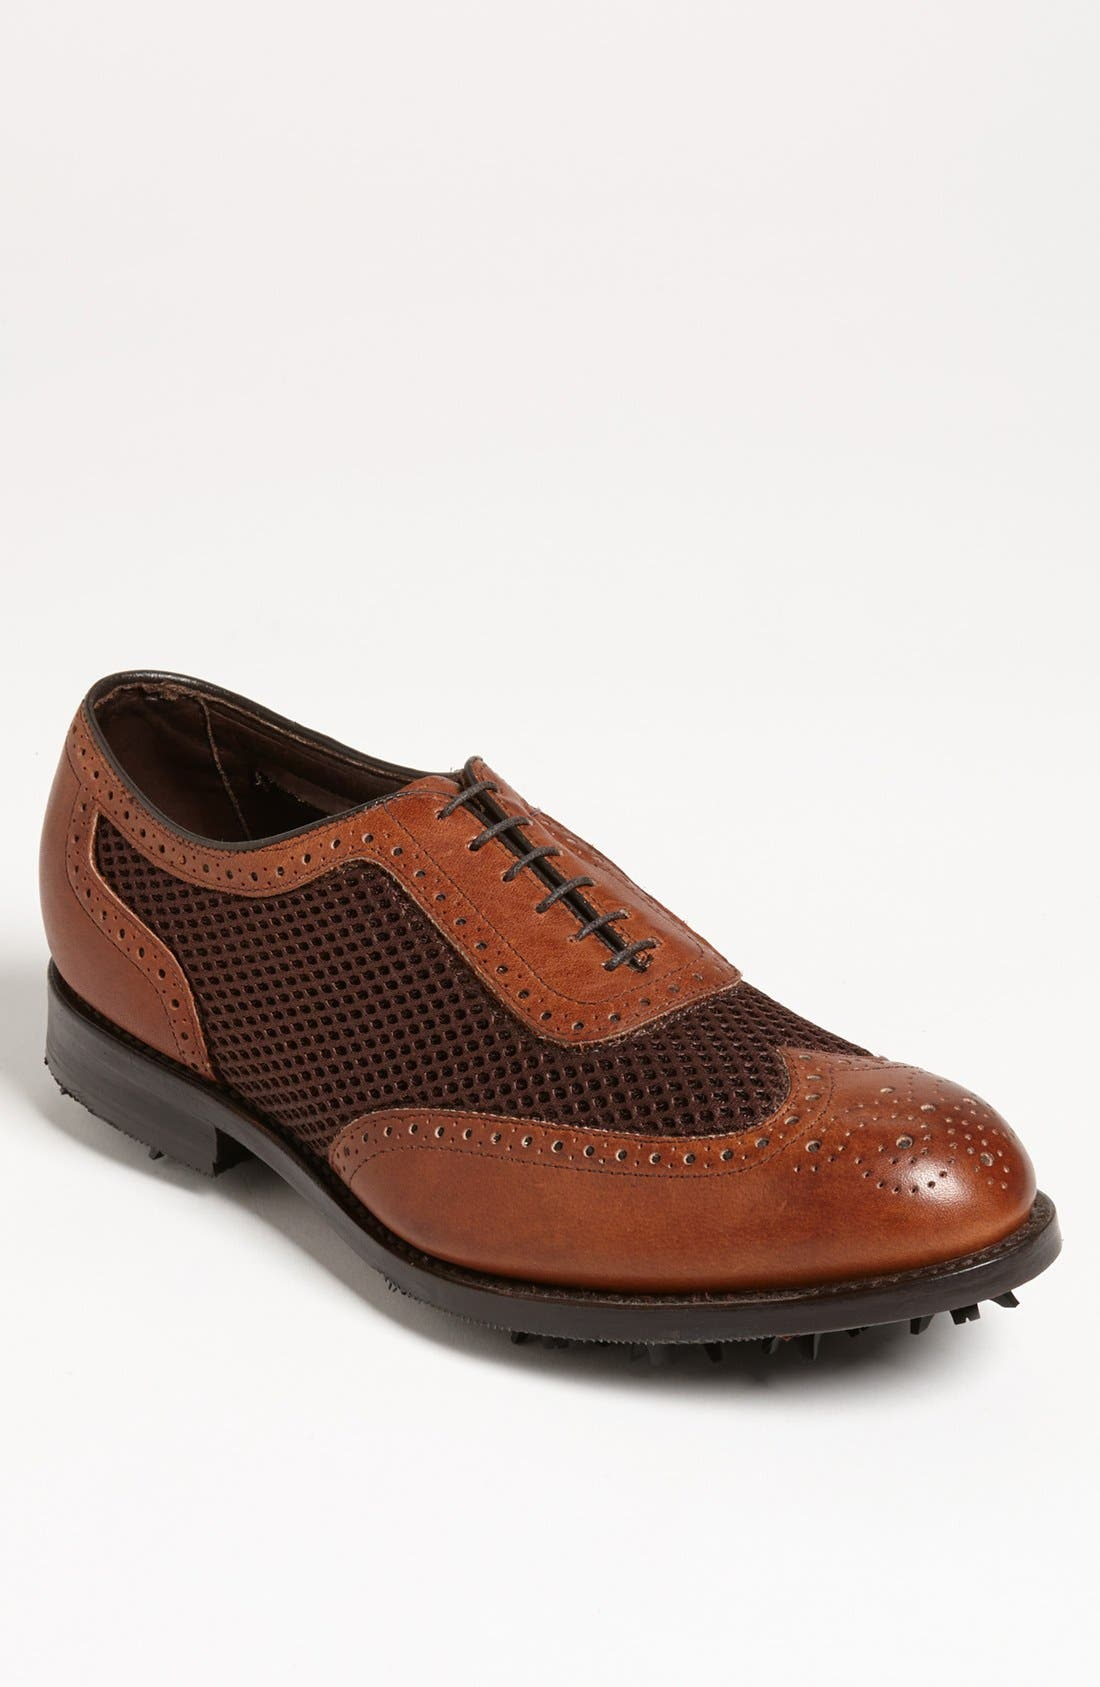 Alternate Image 1 Selected - Allen Edmonds 'Double Eagle' Golf Shoe (Men)